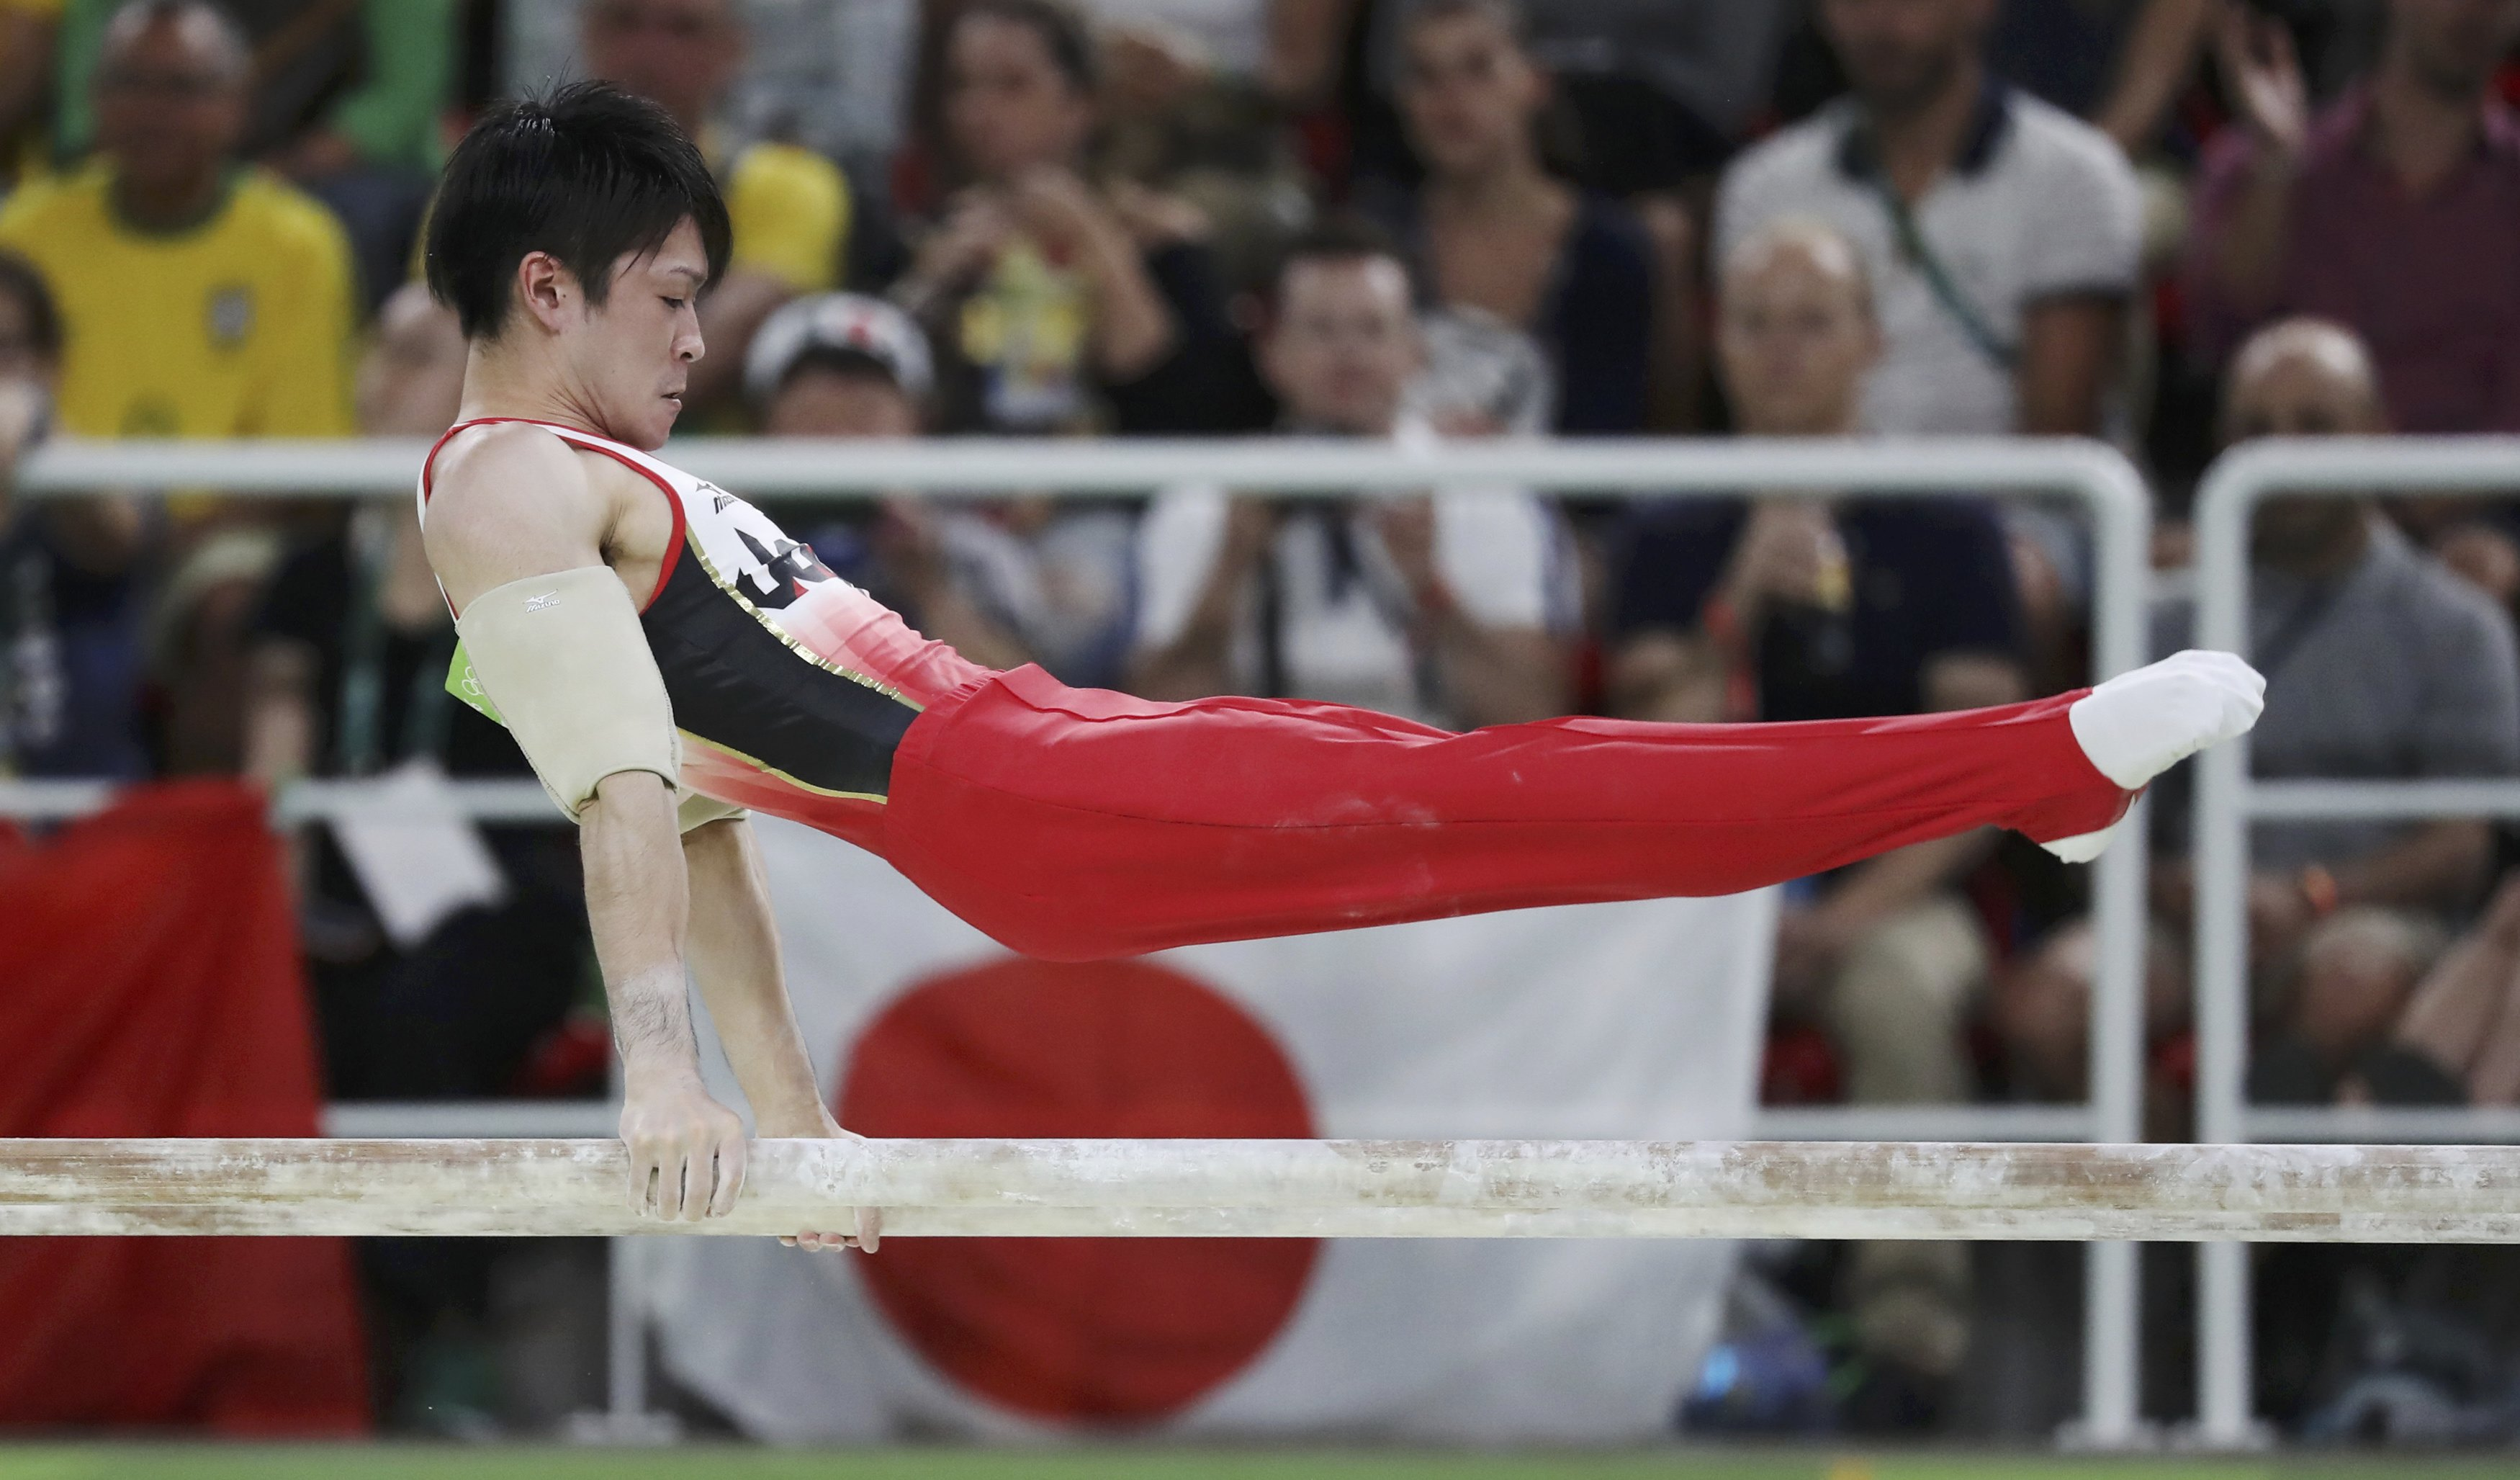 Kohei Uchimura competes on the parallel bars during the men's gymnastics team final en route to winning the gold medal on Monday at the 2016 Rio de Janeiro Olympics. | REUTERS